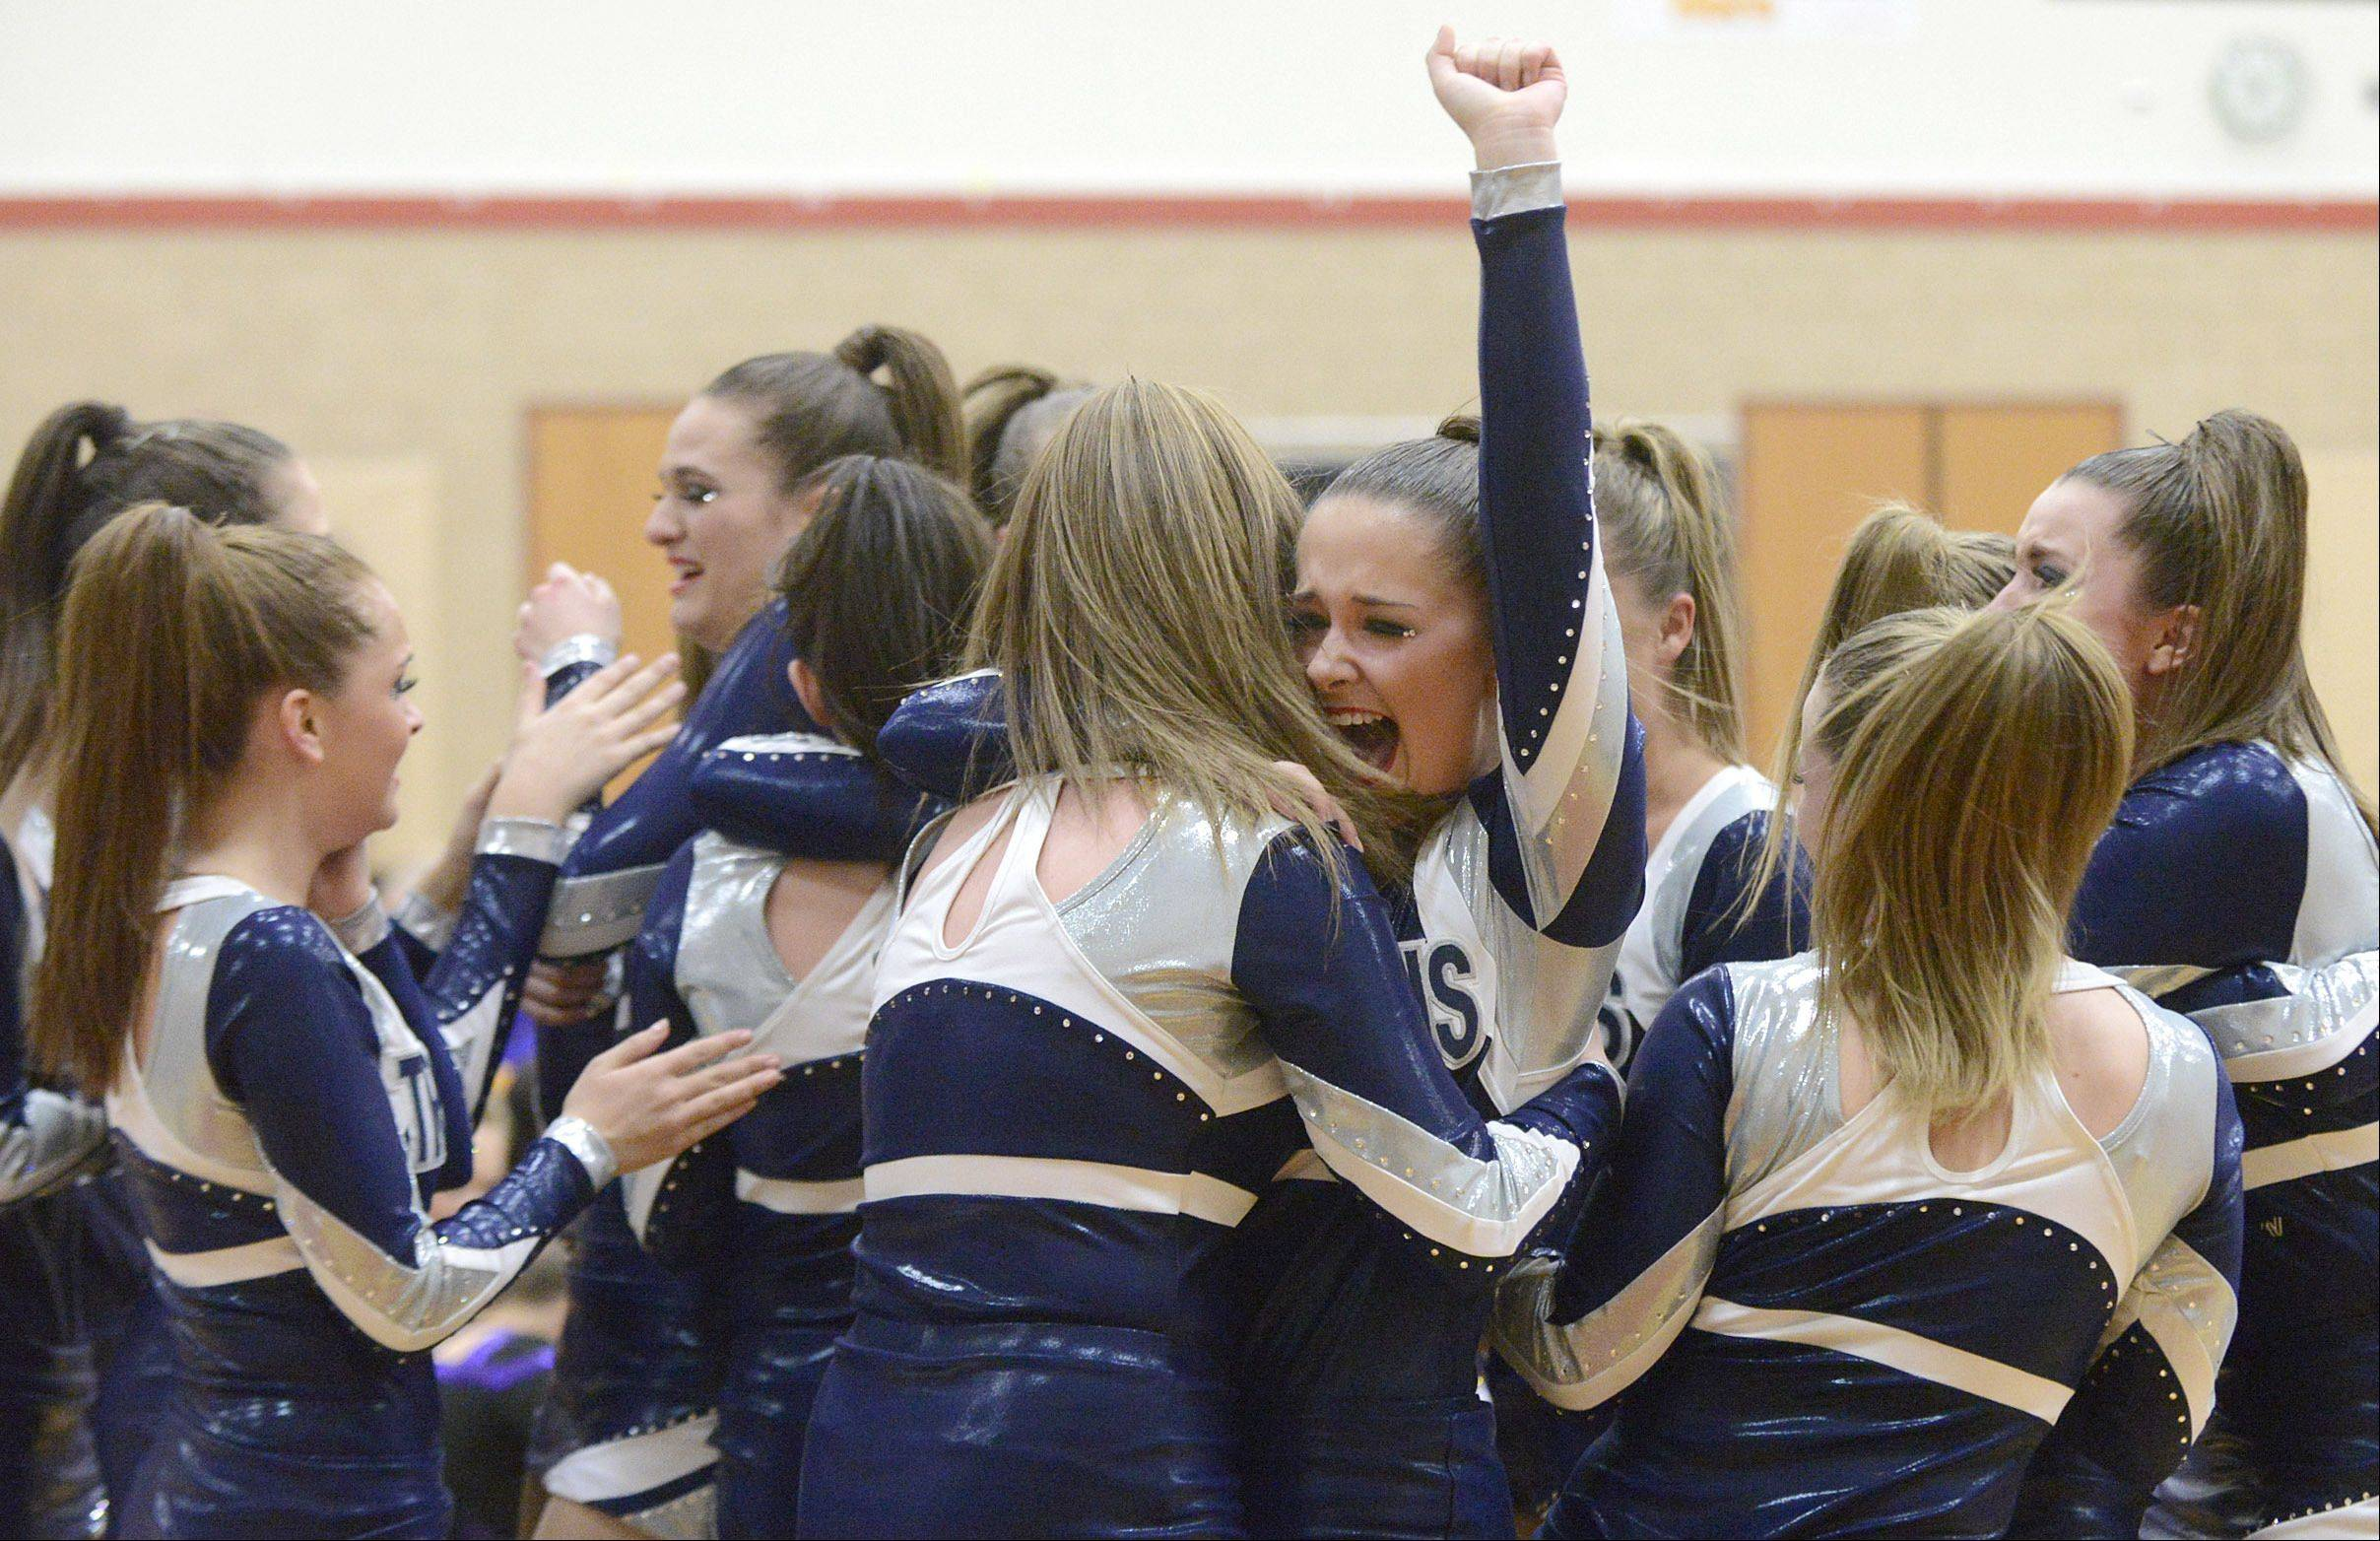 Laura Valentine, 16, throws her fist into the air celebrating Cary Grove High School's taking third place and making it to state during the IHSA 2A competitive dance sectionals at Huntley High School on Saturday.